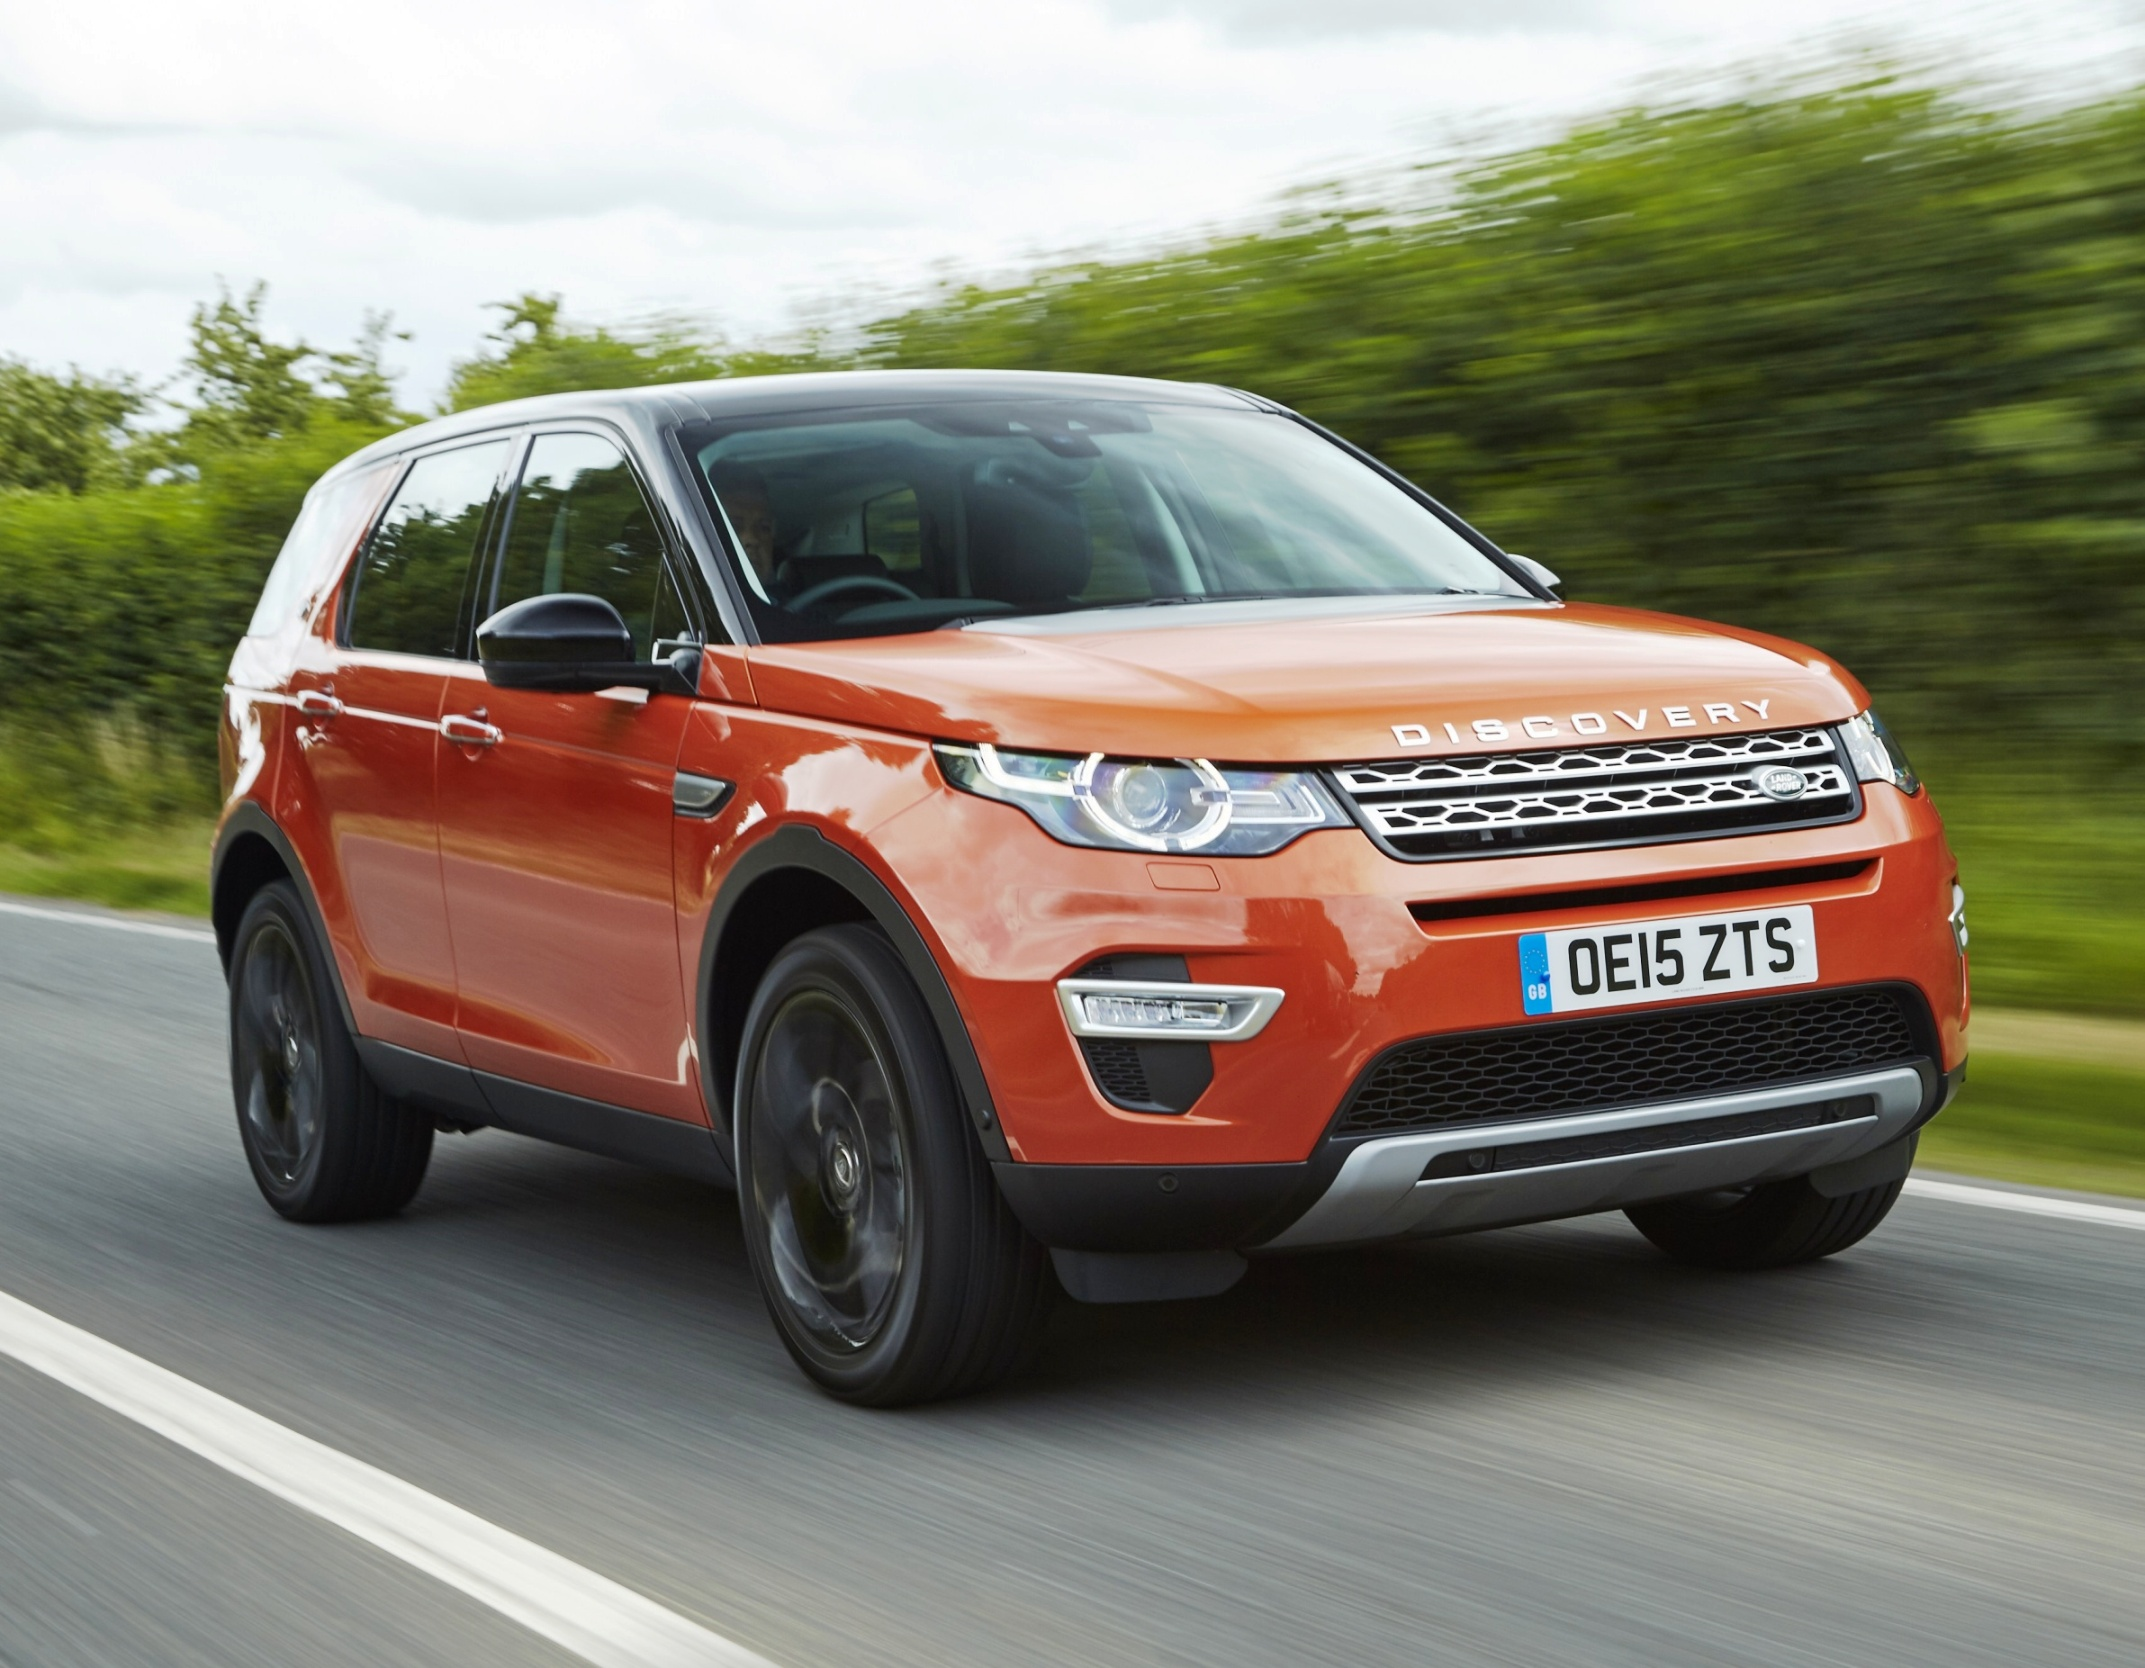 discovery price land prices rover specs carbuyer landrover news and sport